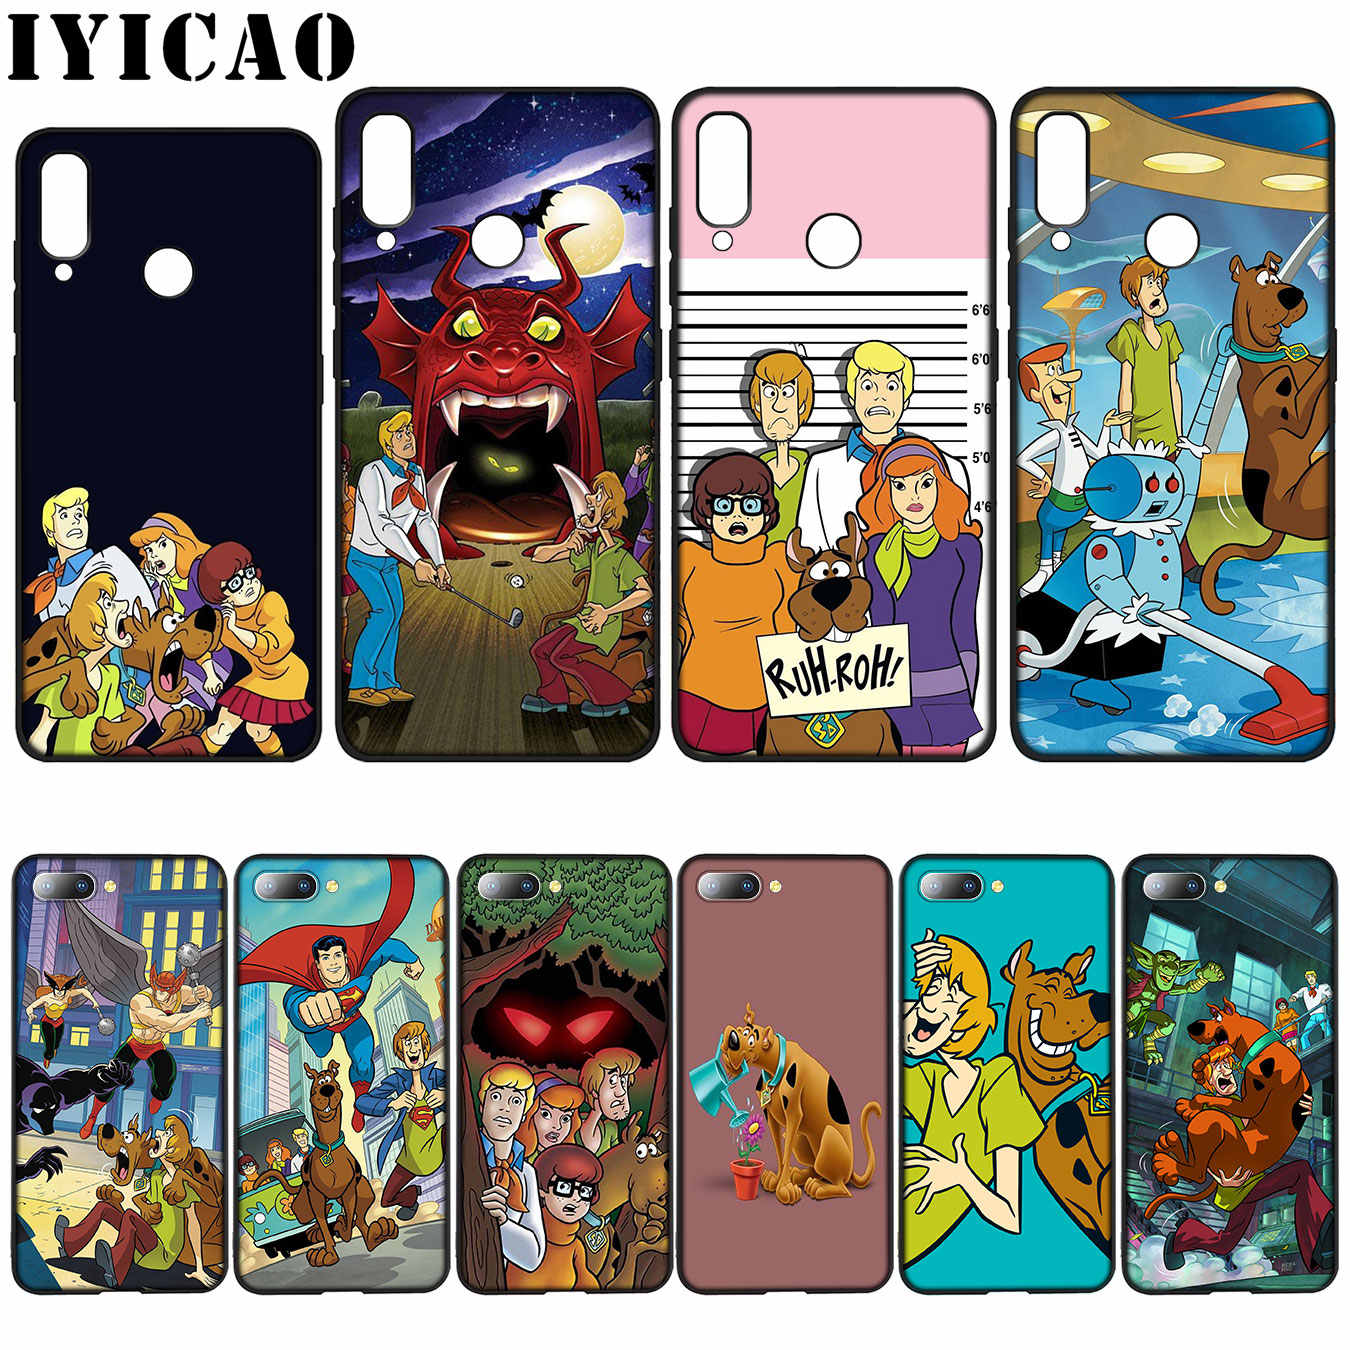 IYICAO Shaggy and Scooby Doo Silicone Soft Case for Huawei Y7 Y6 Prime Y9 2018 Honor 8C 8X 8 9 10 Lite 6A 7C 7X 7A Pro